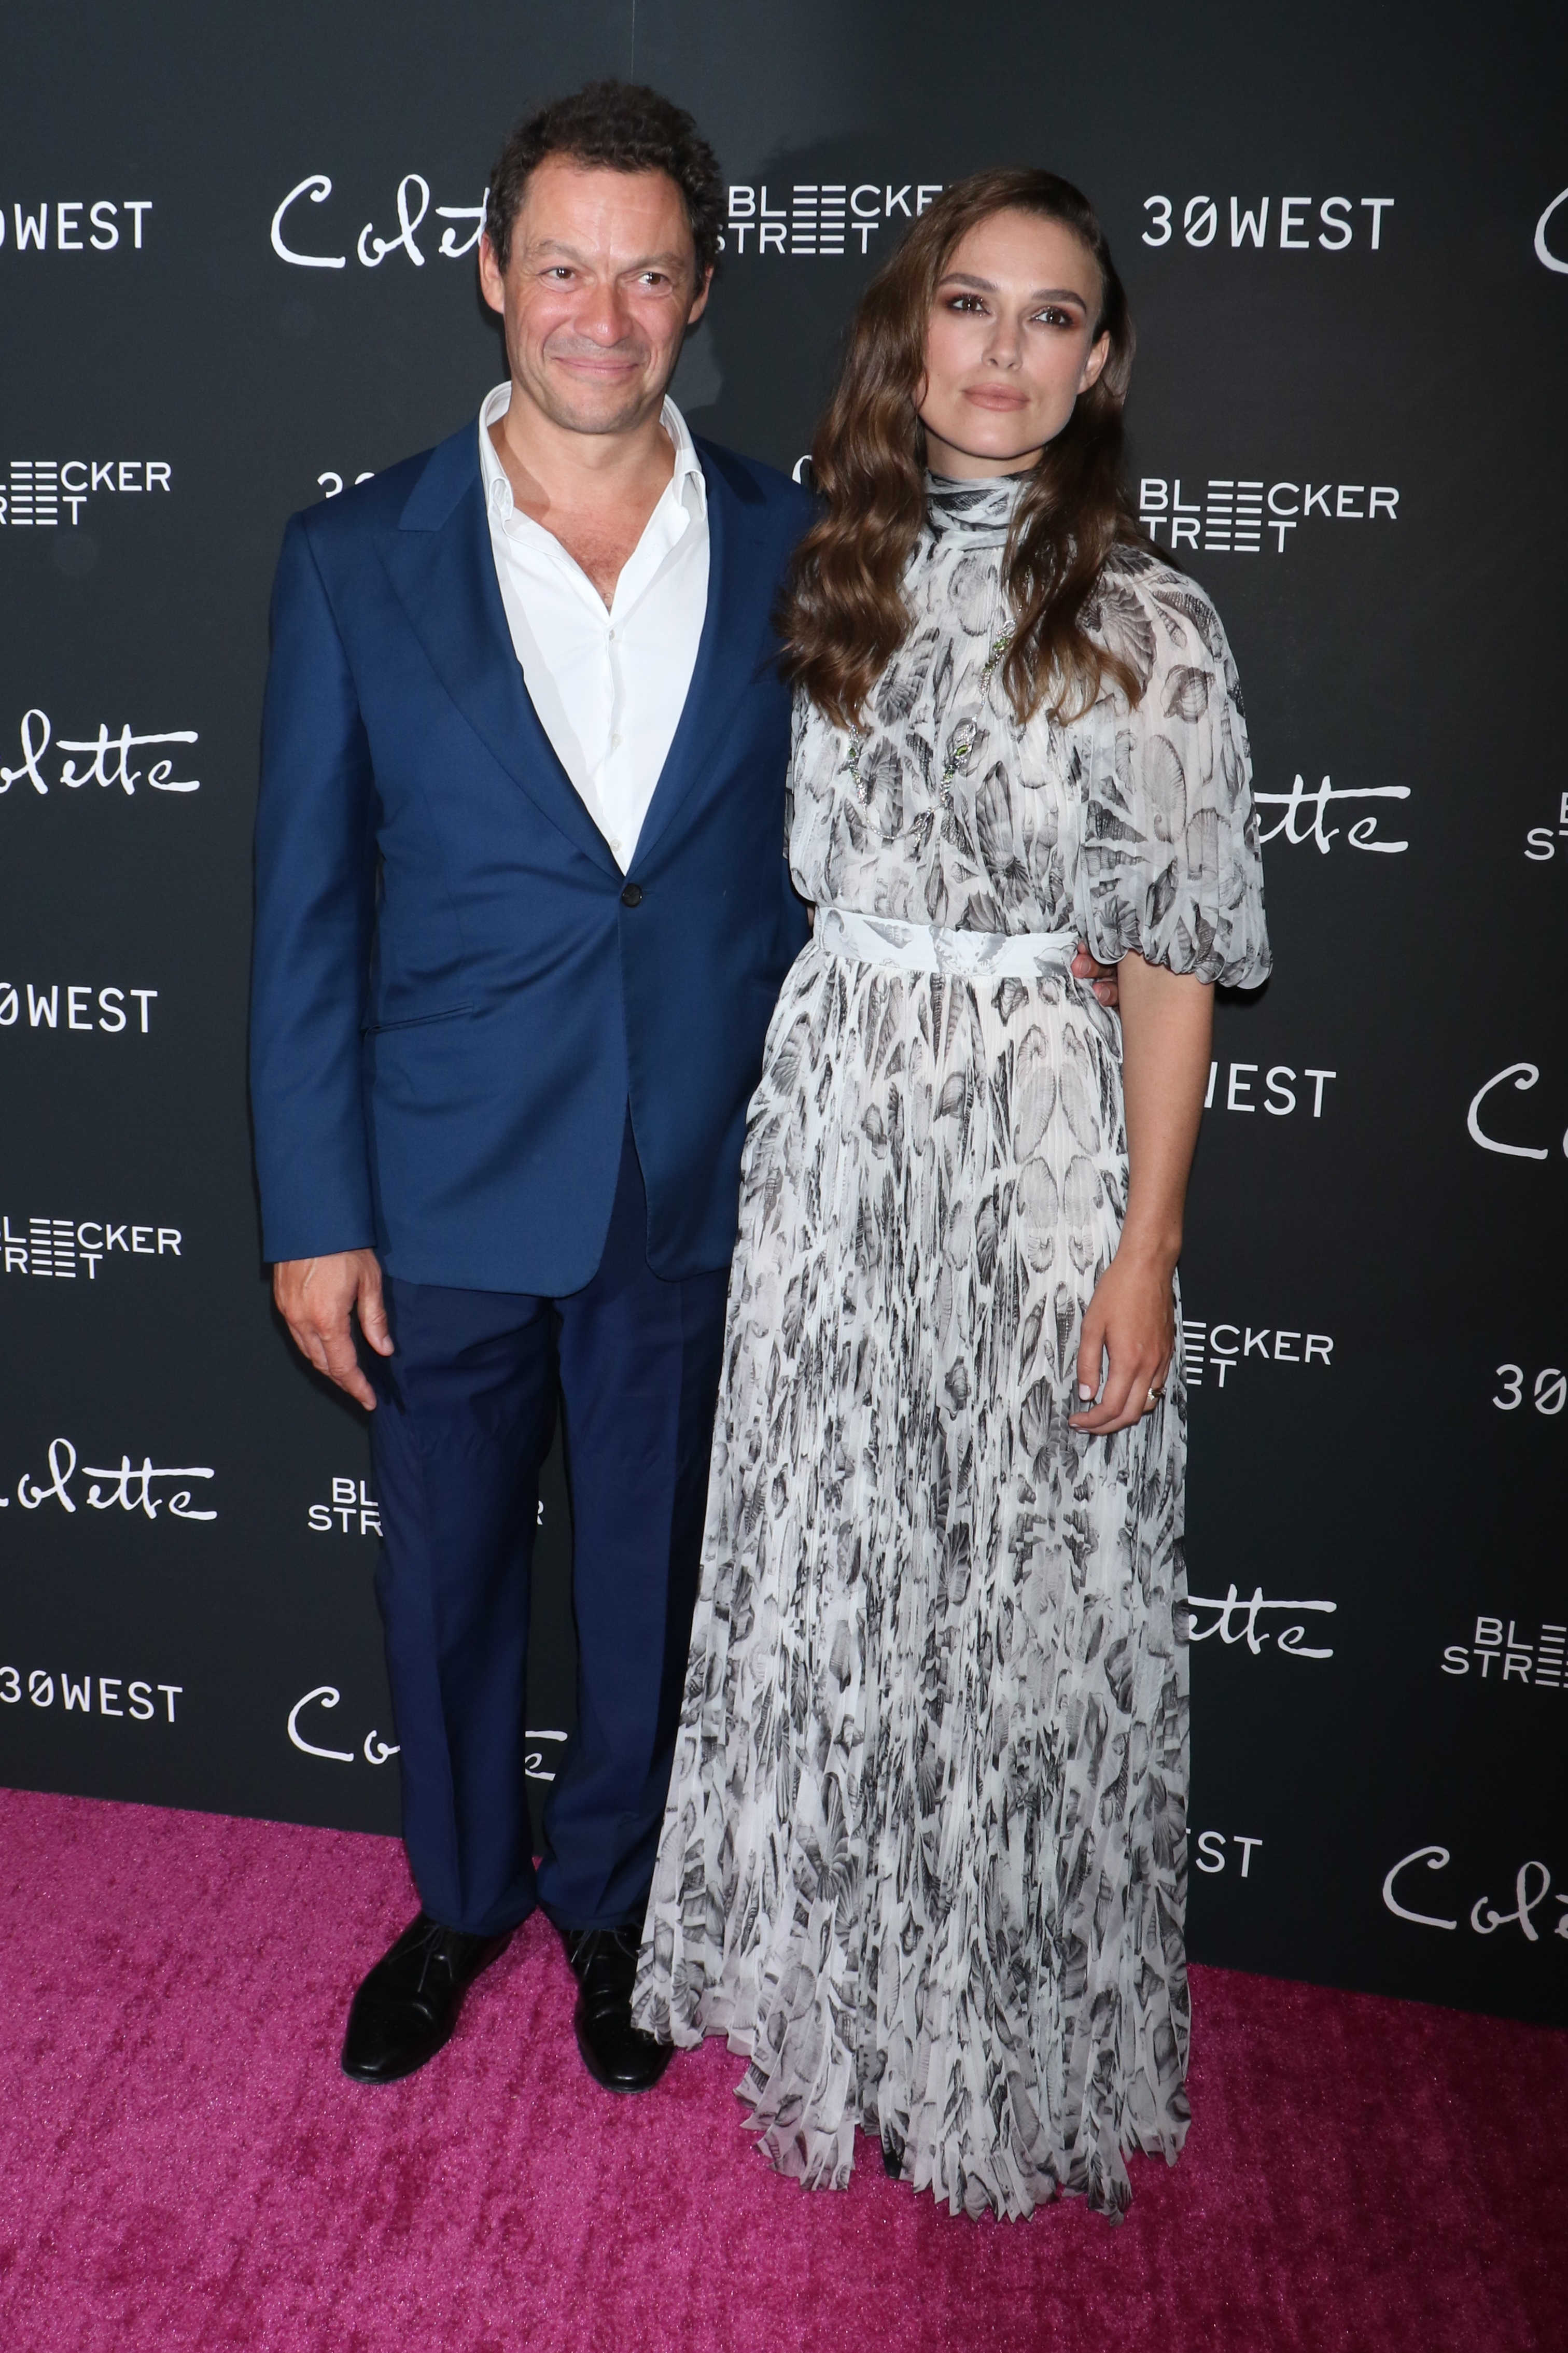 """Dominic West and Keira Knightley attend the """"Colette"""" film screening in New York City on Sept. 13, 2018."""